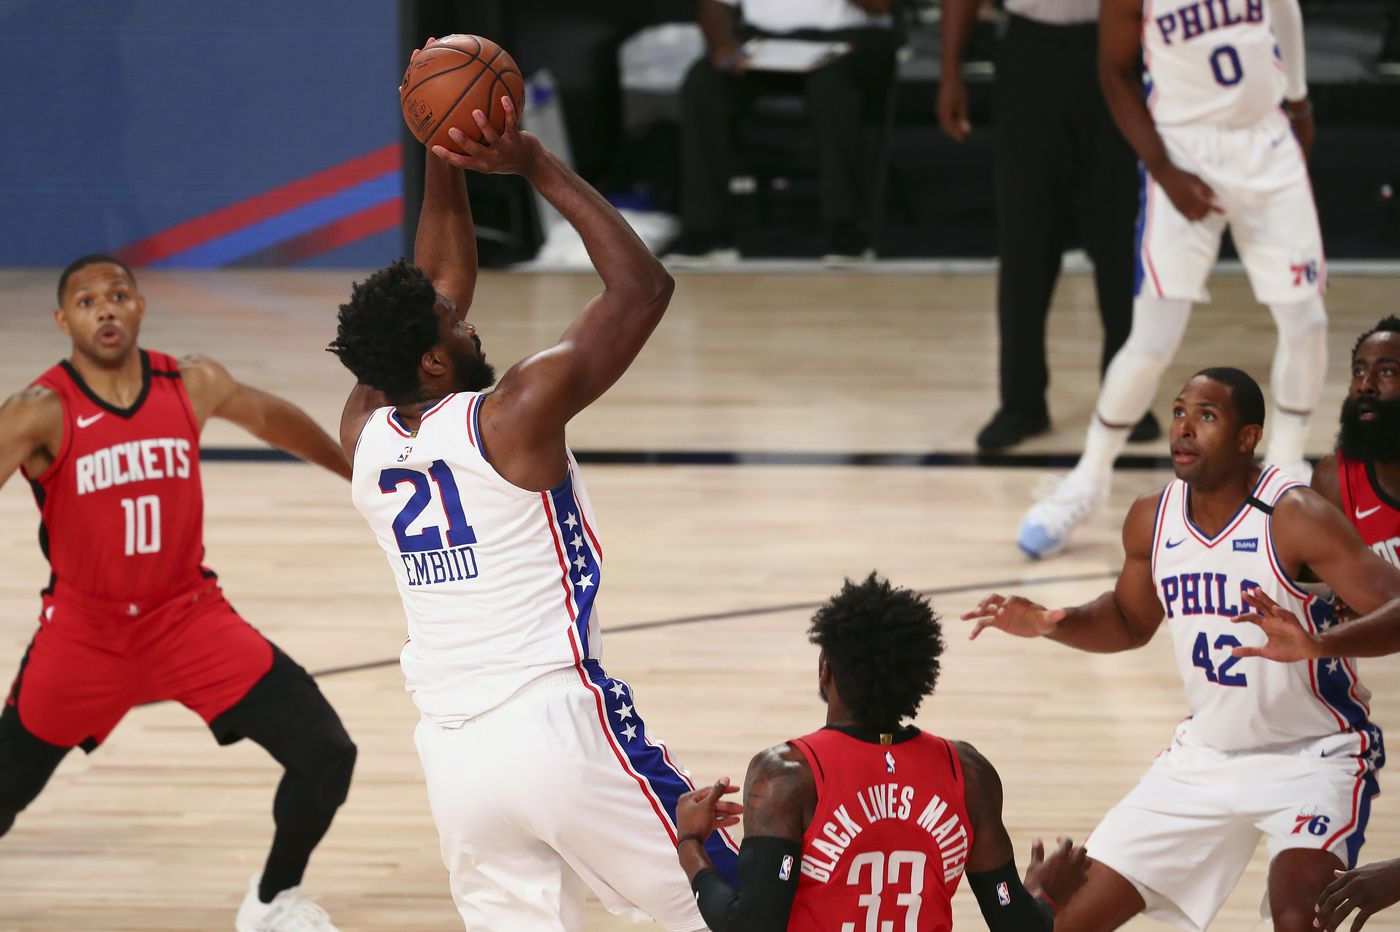 Sixers-Rockets observations: Joel Embiid gets his work in, James Harden's creativity, Matisse Thybulle's defense